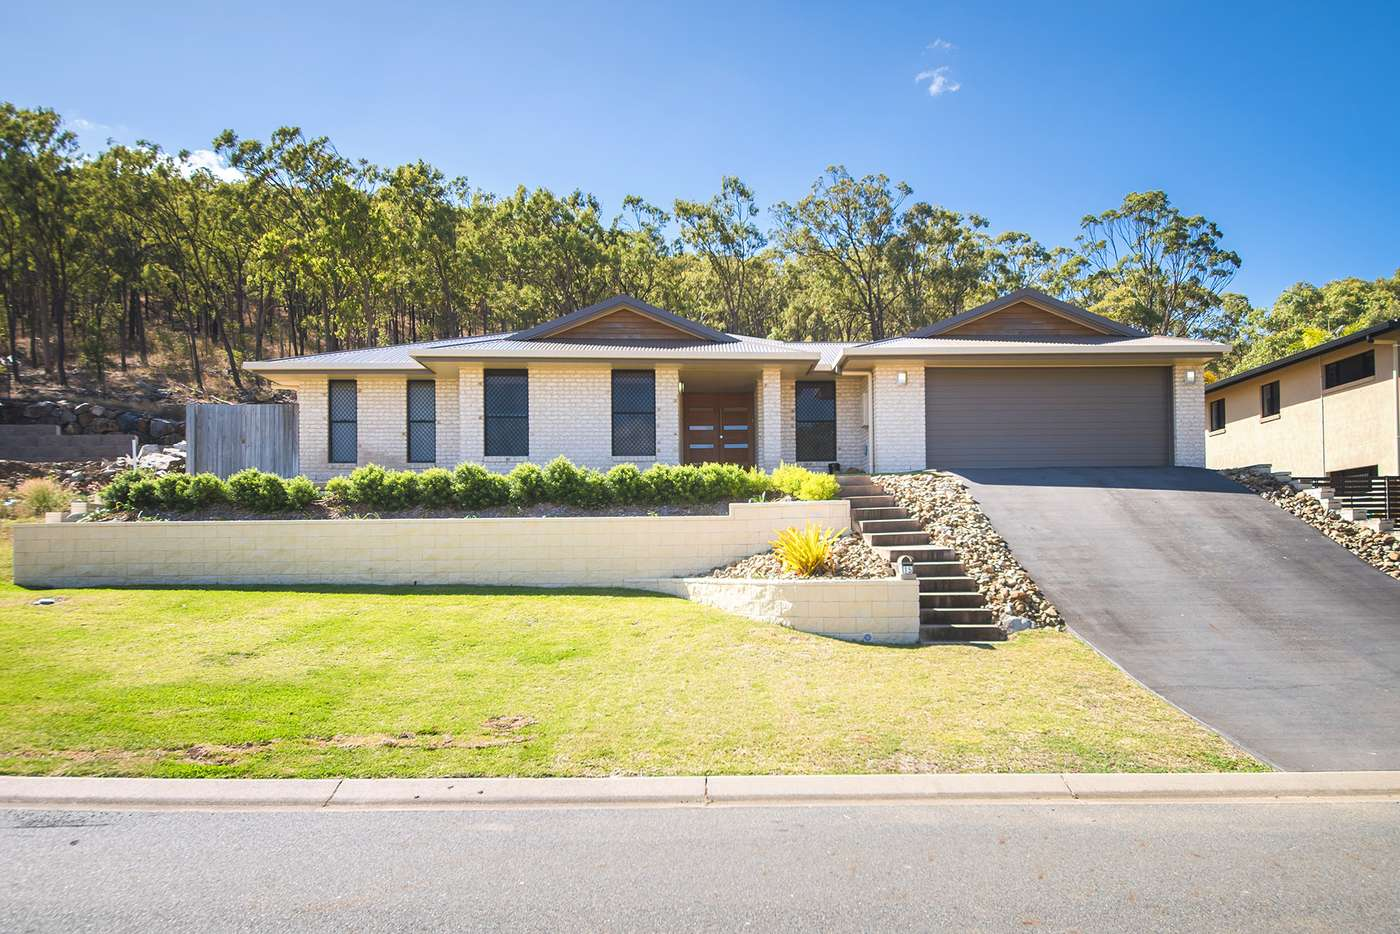 Main view of Homely house listing, 15 Haven Close, Norman Gardens QLD 4701